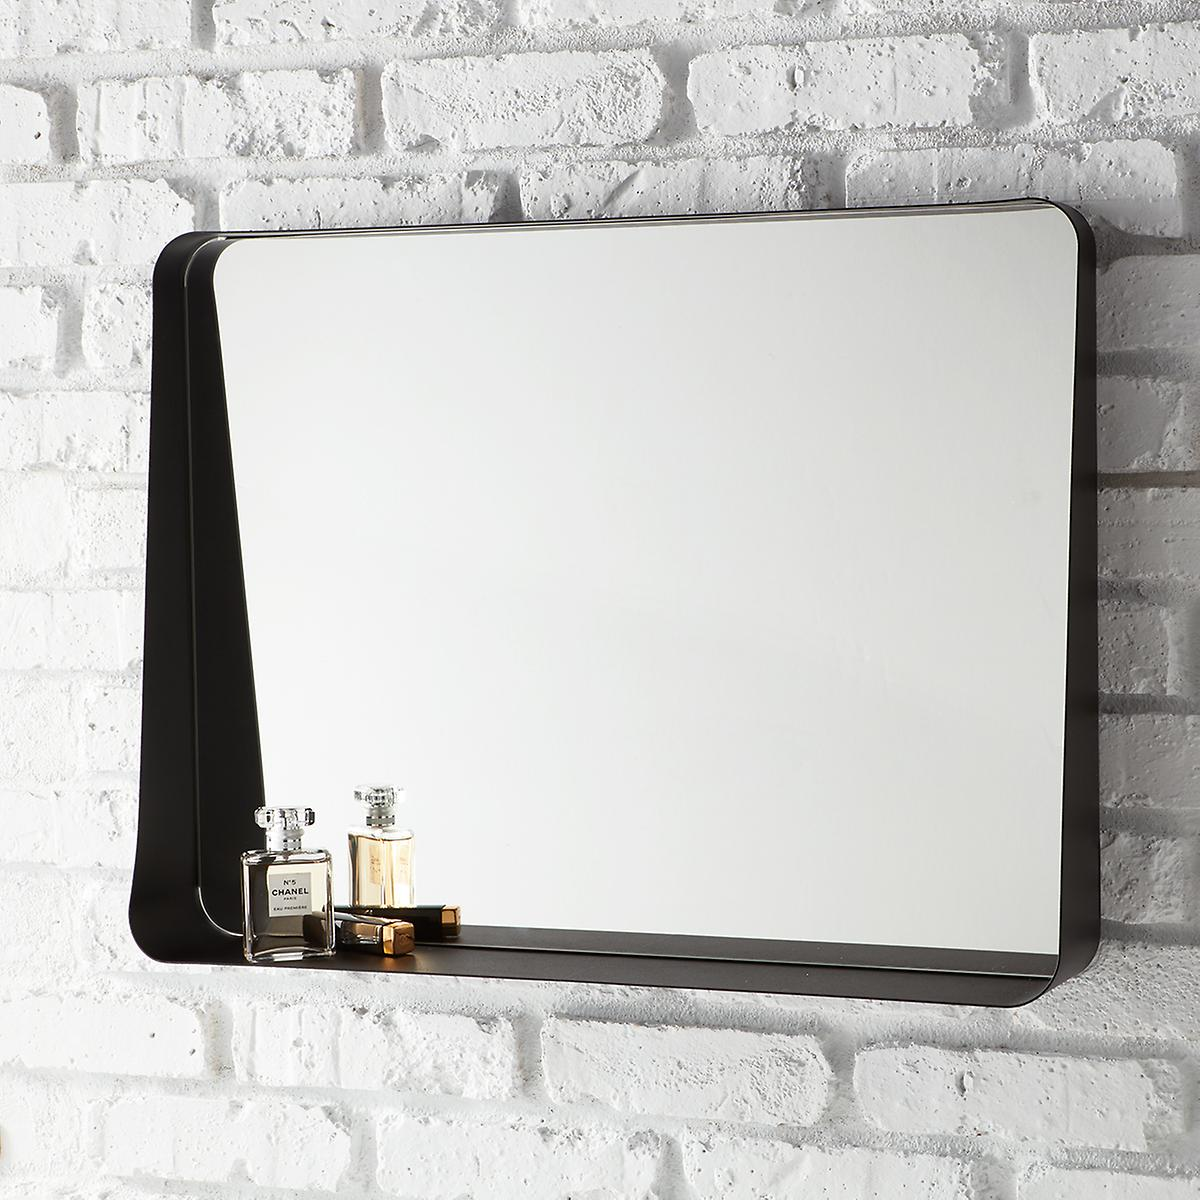 Wall mirror black gallery home wall decoration ideas black horizontal arch wall mirror the container store black horizontal arch wall mirror amipublicfo gallery amipublicfo Gallery